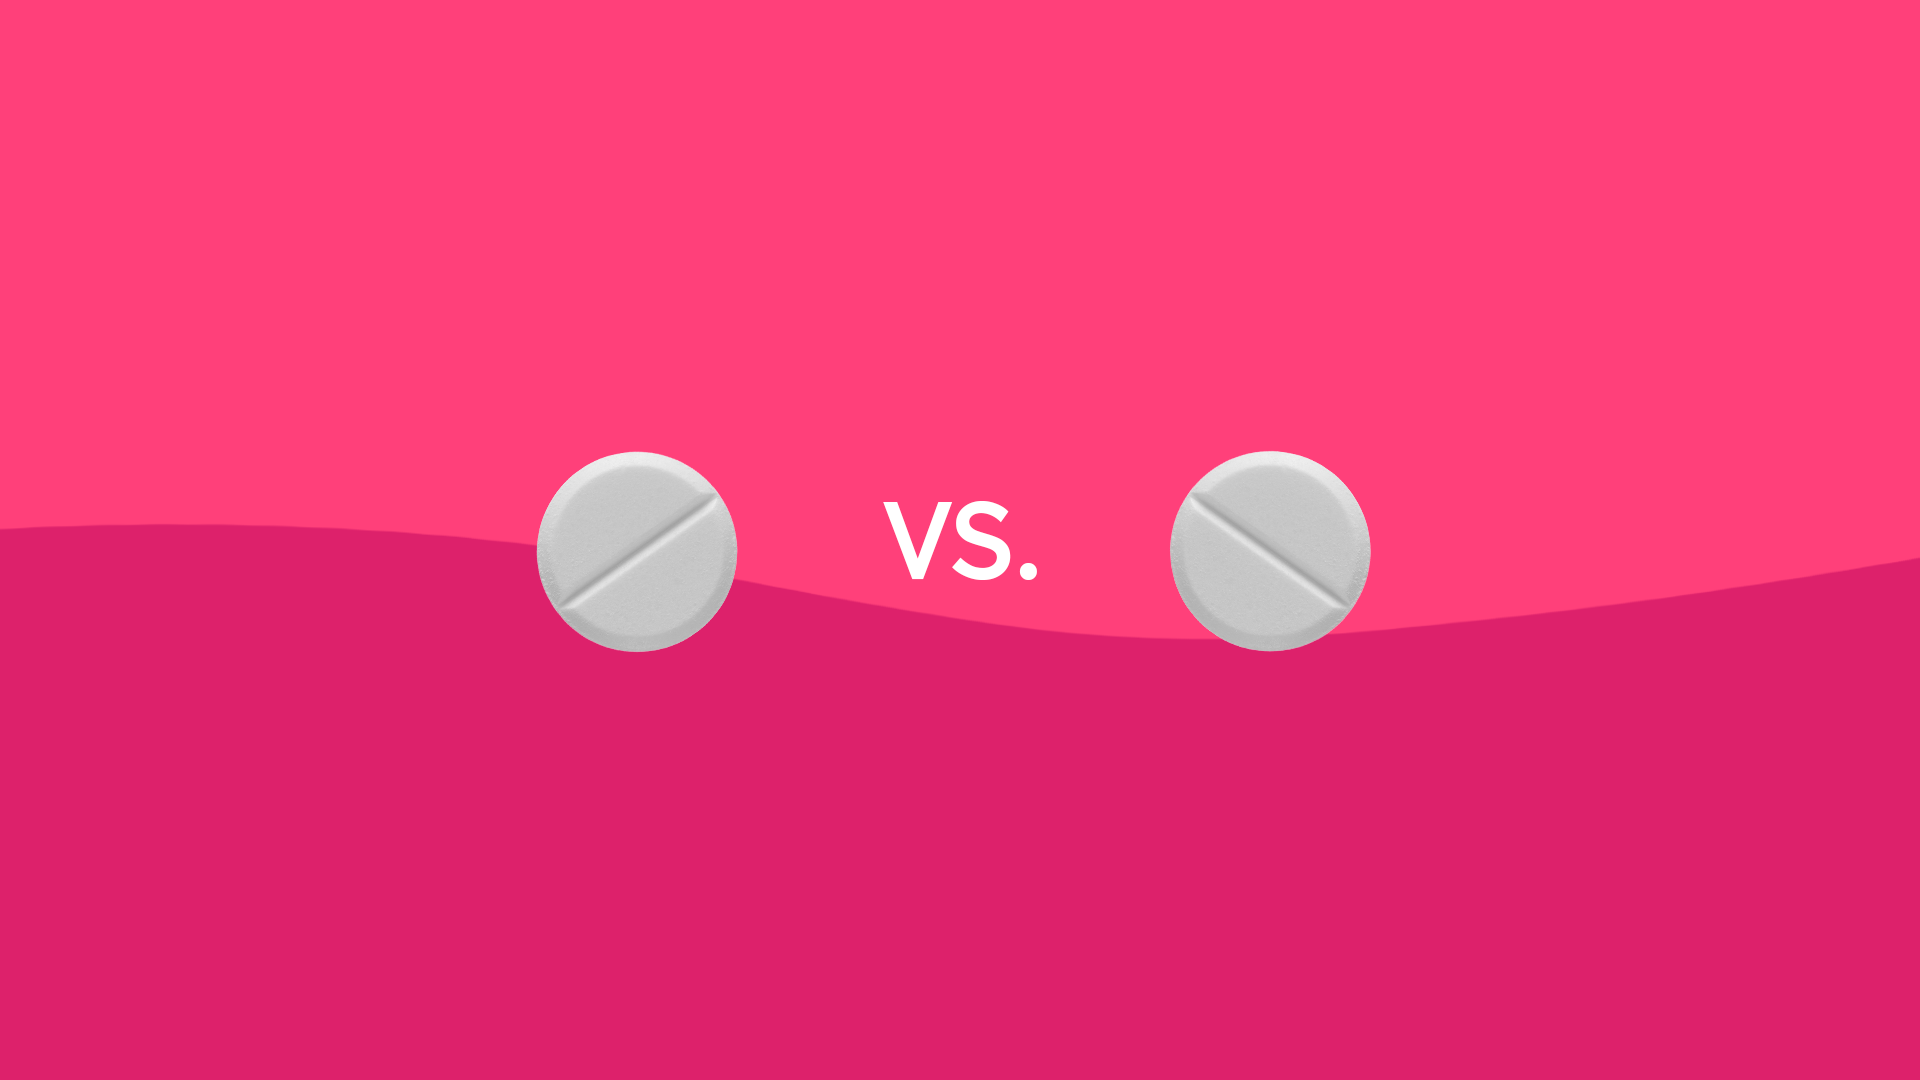 Stendra vs. Viagra: Differences, similarities, and which is better for you